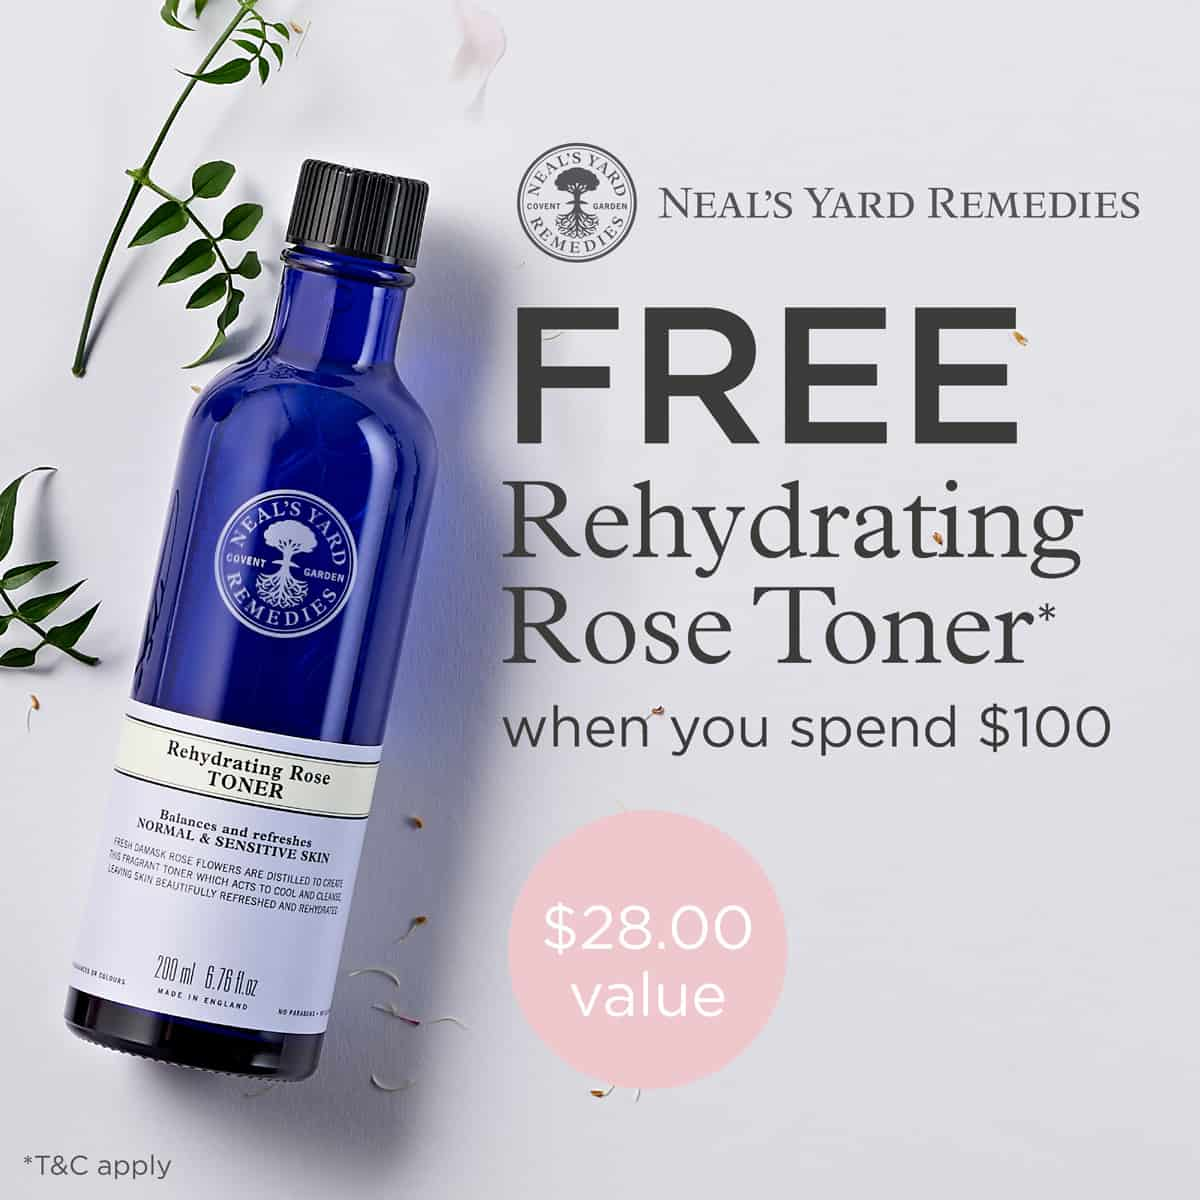 FREE organic rose toner with $100 purchase. Fabulous organic skincare from Neal's Yard Remedies